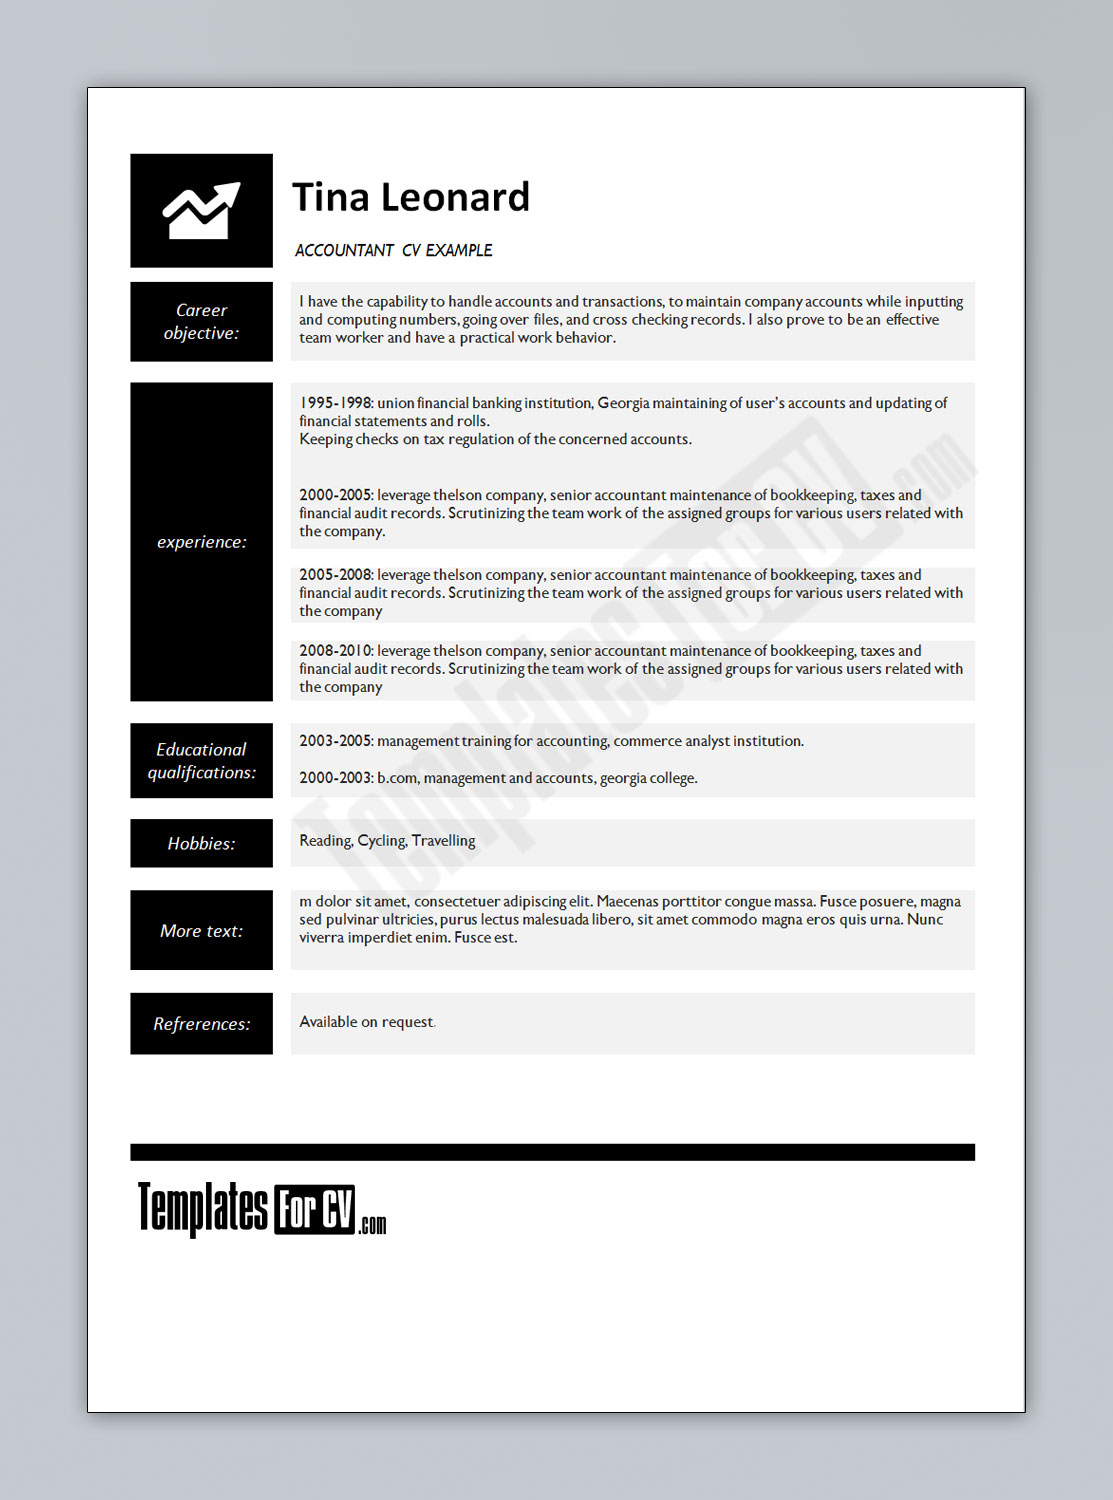 CV Resume Template. .Resume About Me Examples